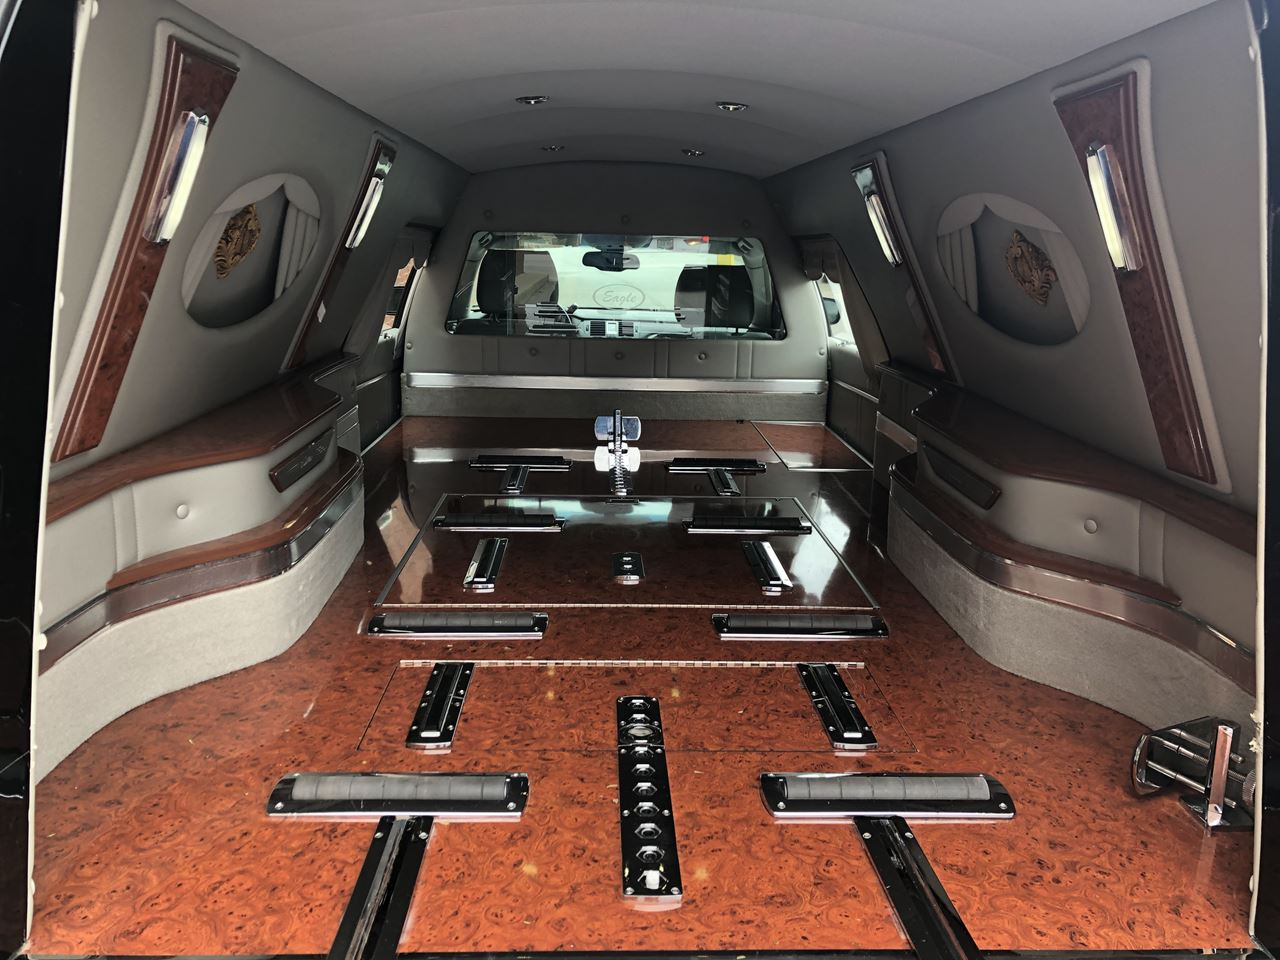 2011 Cadillac Eagle Kingsley Hearse 18 7